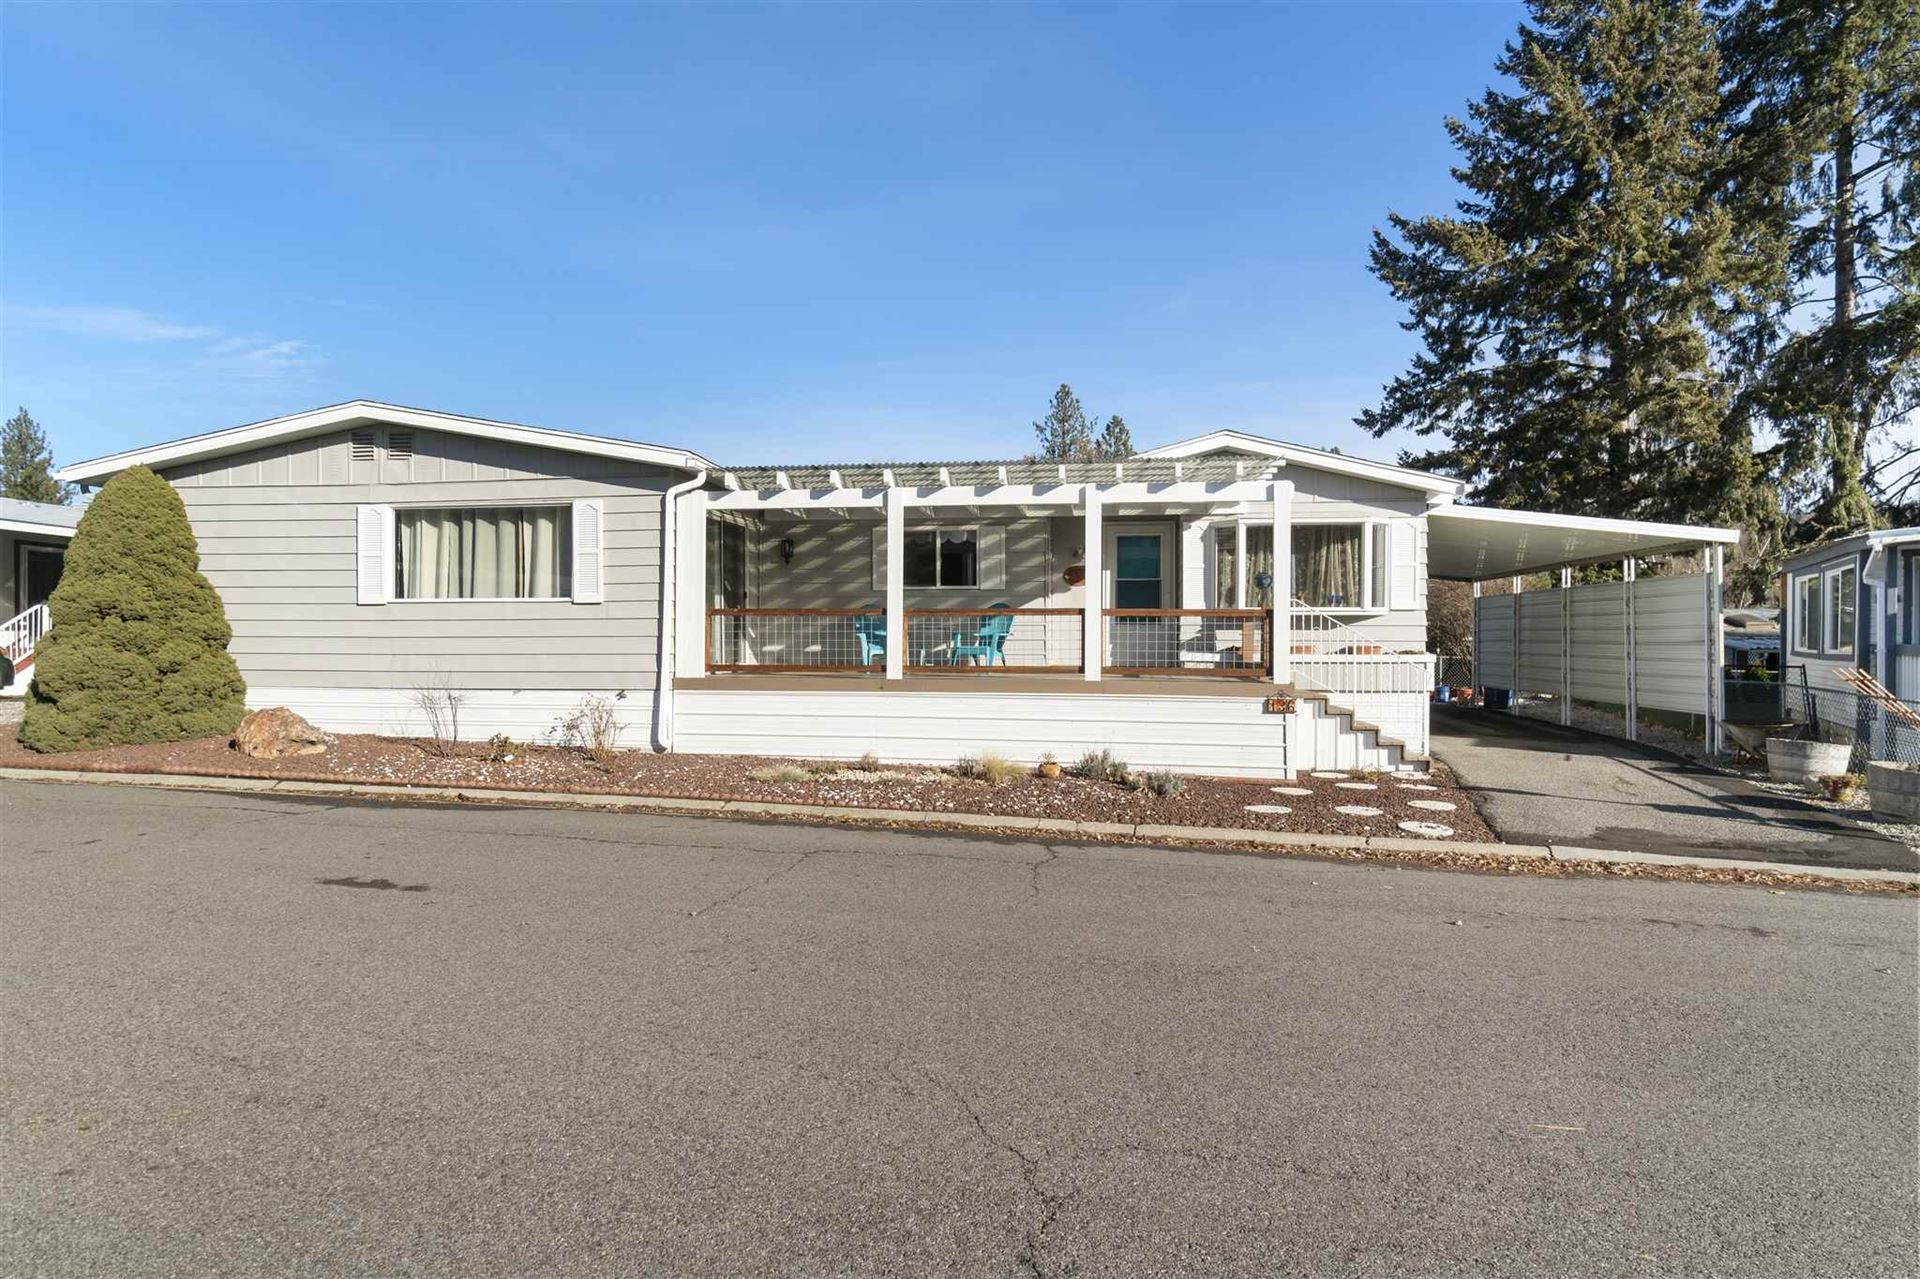 2311 W 16th Ave #136, Spokane, WA 99224 - #: 202110492